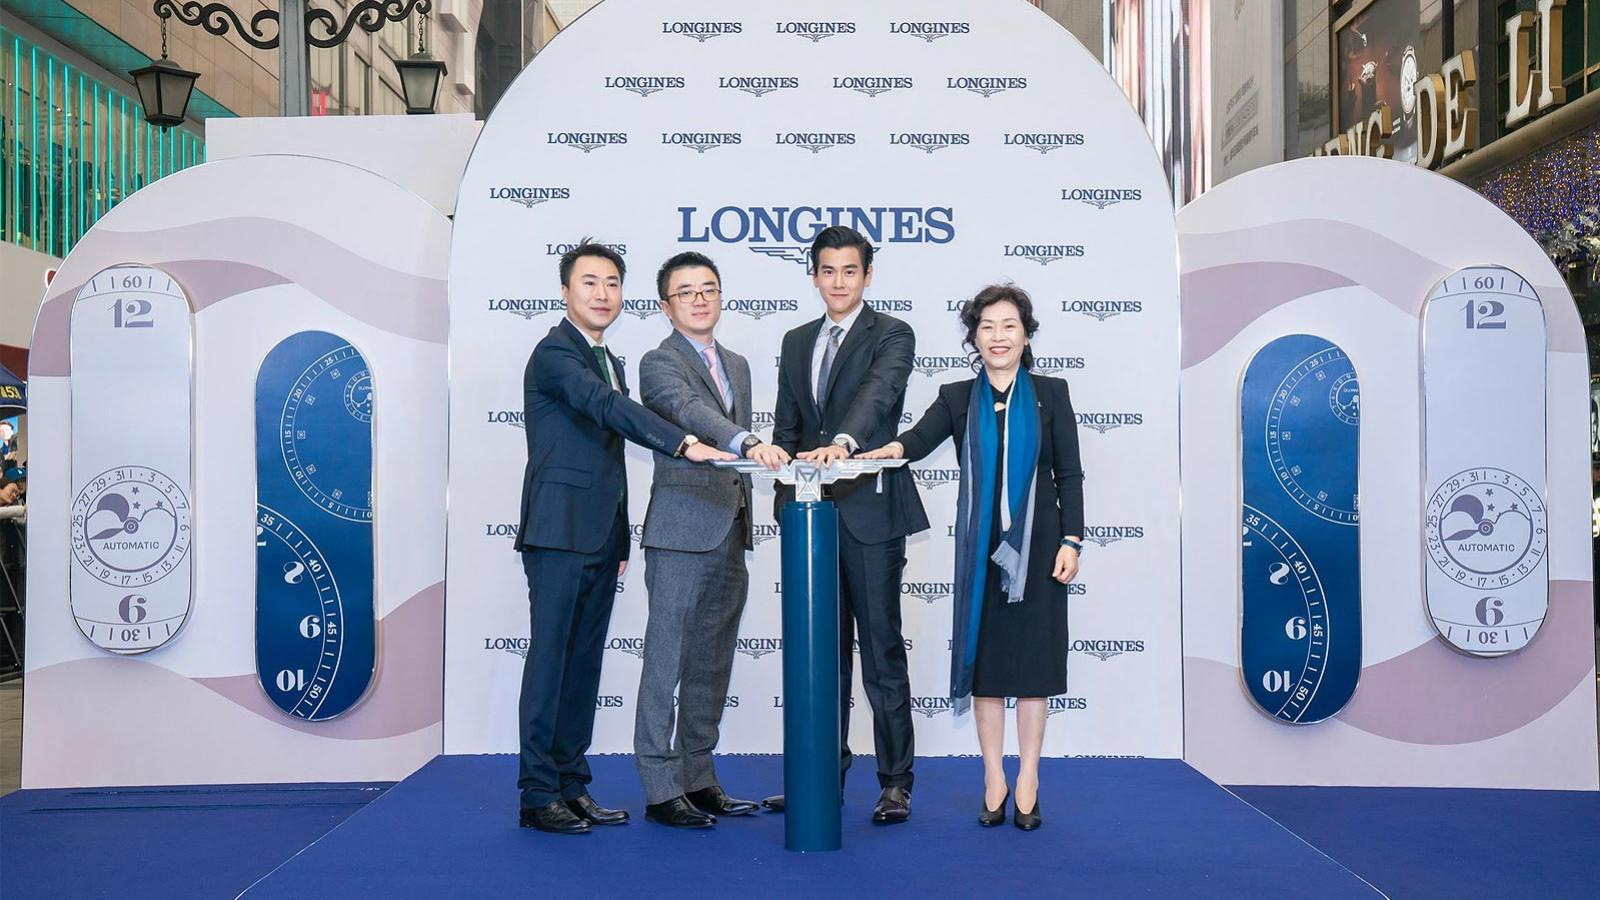 Inauguration of a new Longines Boutique in Chengdu in presence of Eddie Peng; Chengdu; China; 2019